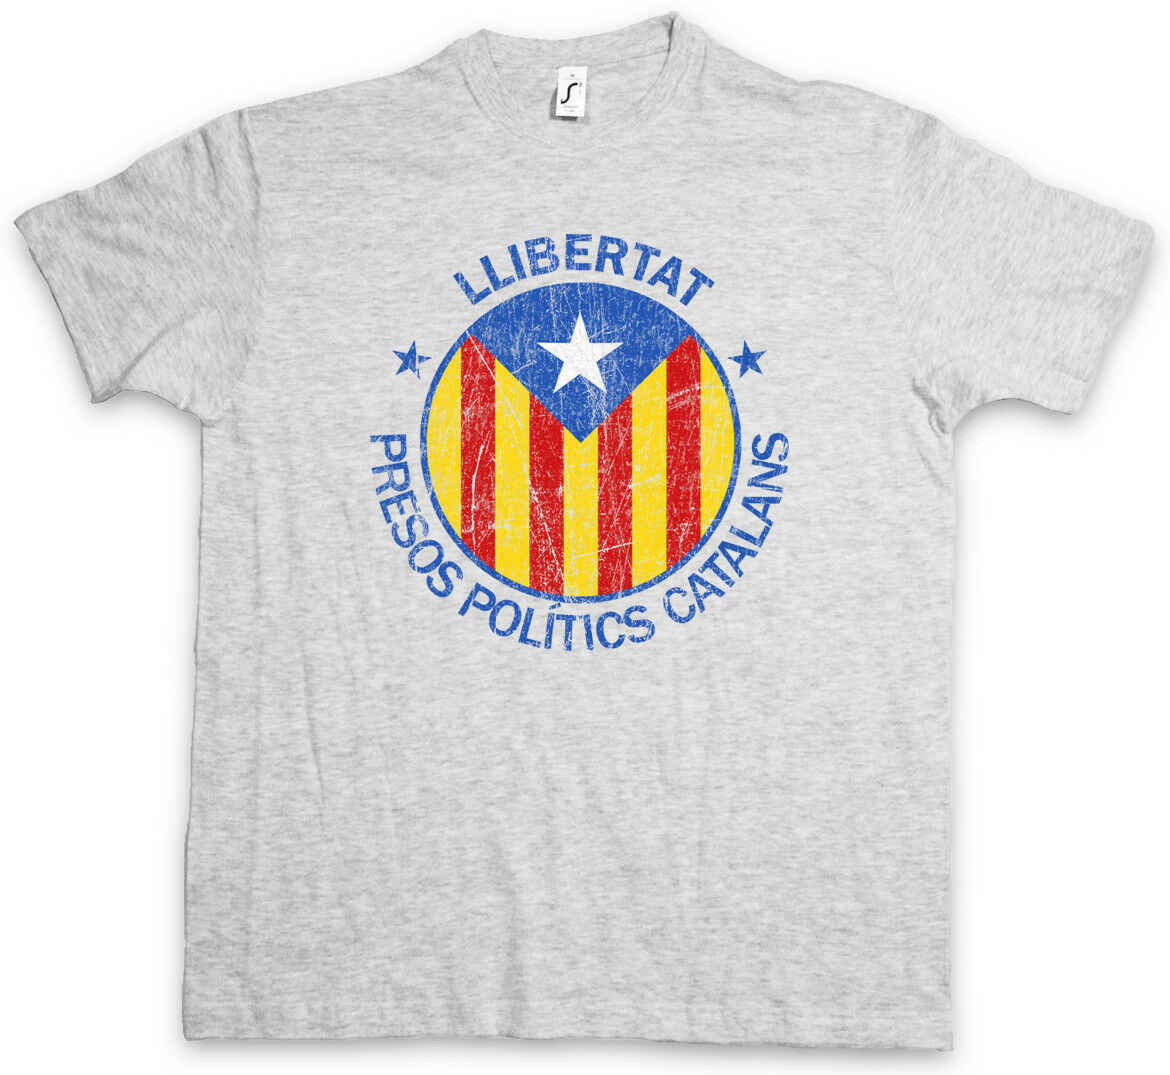 Llibertat Catalonia เสื้อยืด Freedom ฟรี Viva La Revolution Independence